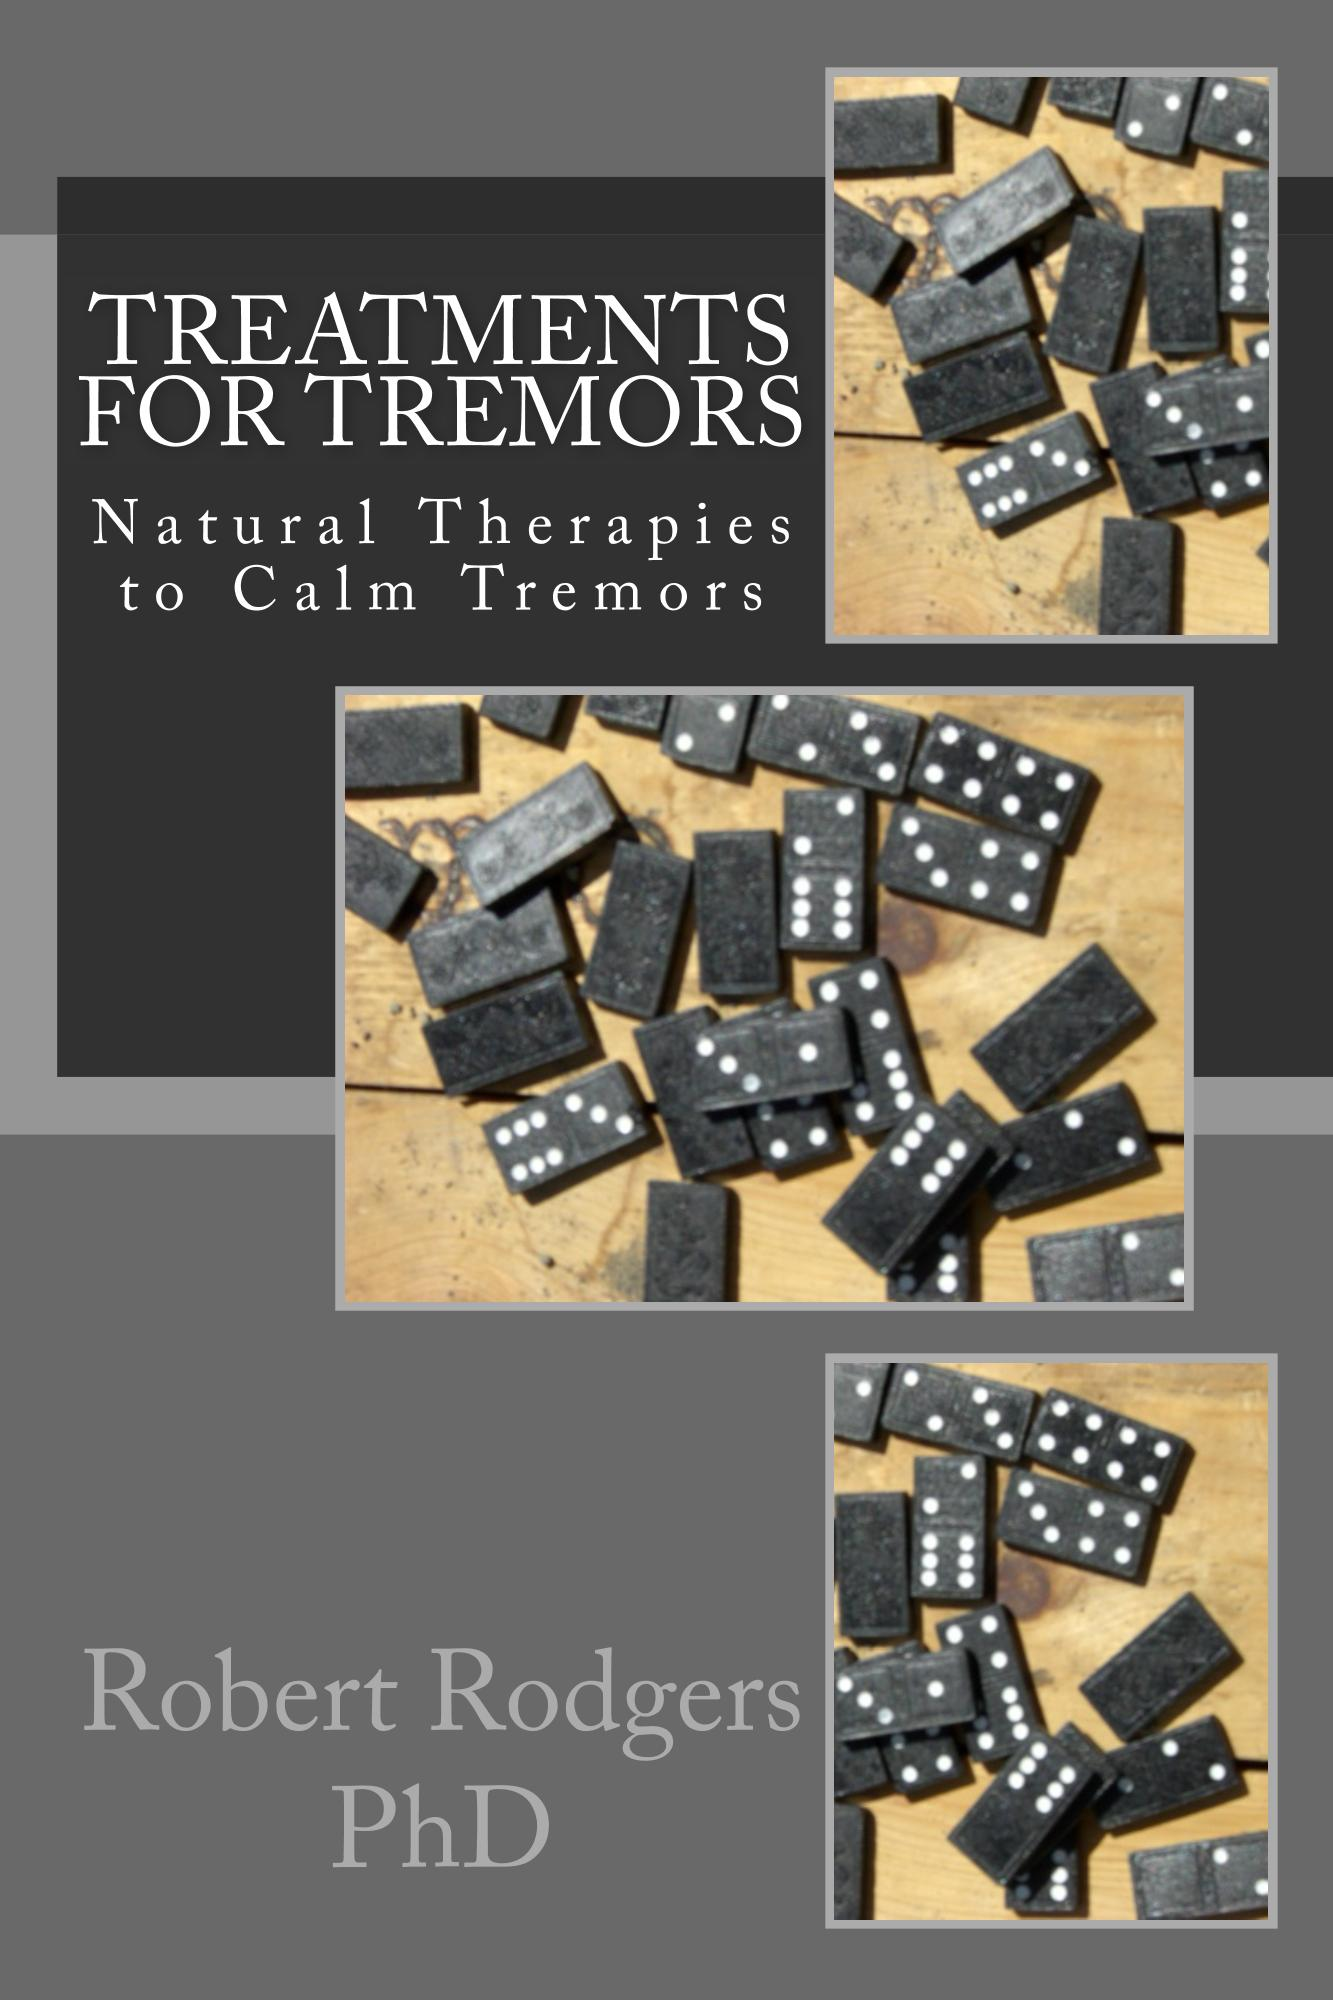 Treatments for Tremors